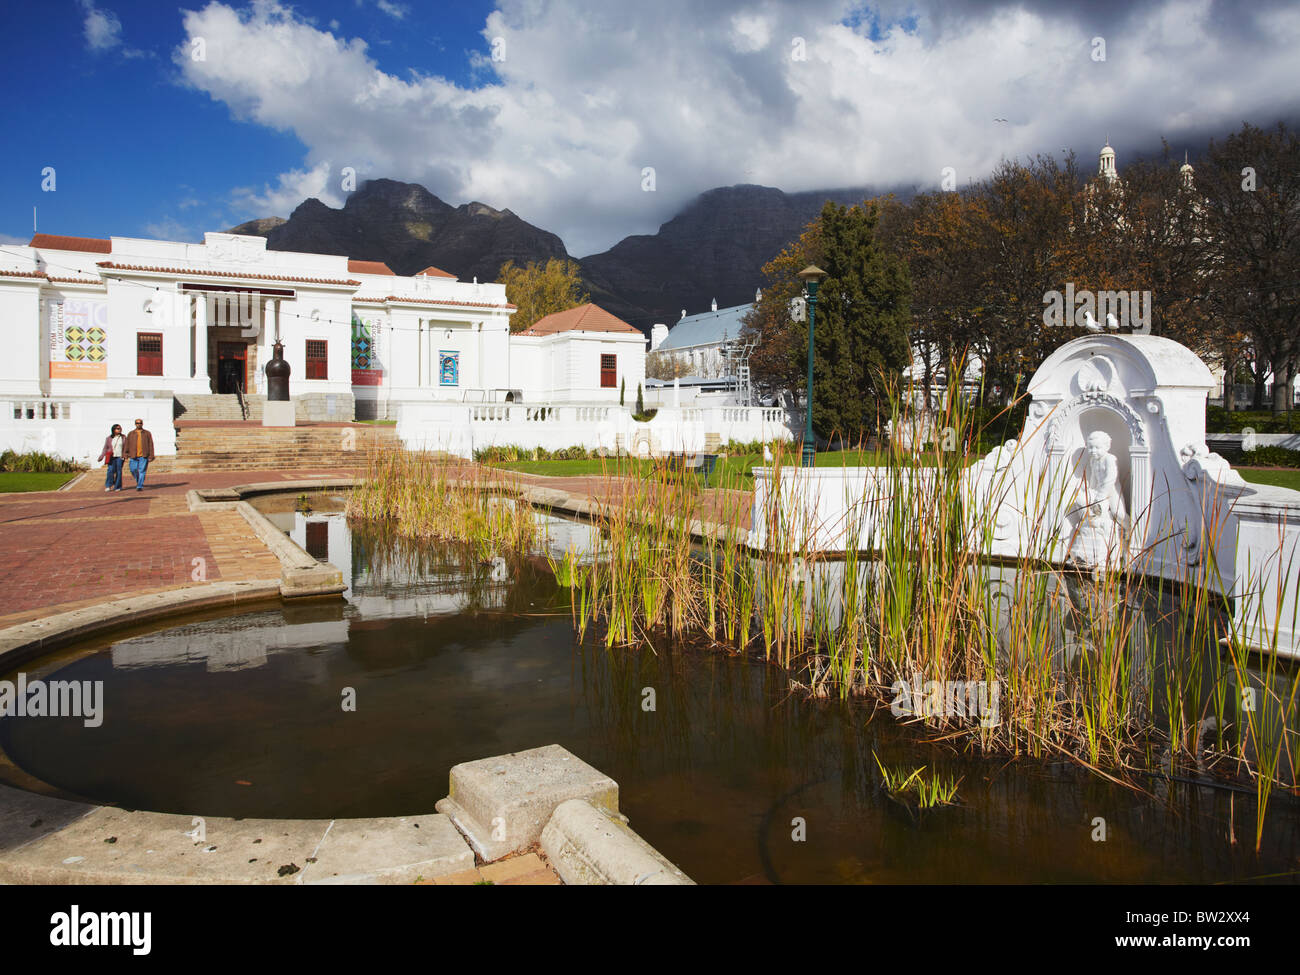 National Gallery, Company's Gardens, City Bowl, Cape Town, Western Cape, South Africa - Stock Image